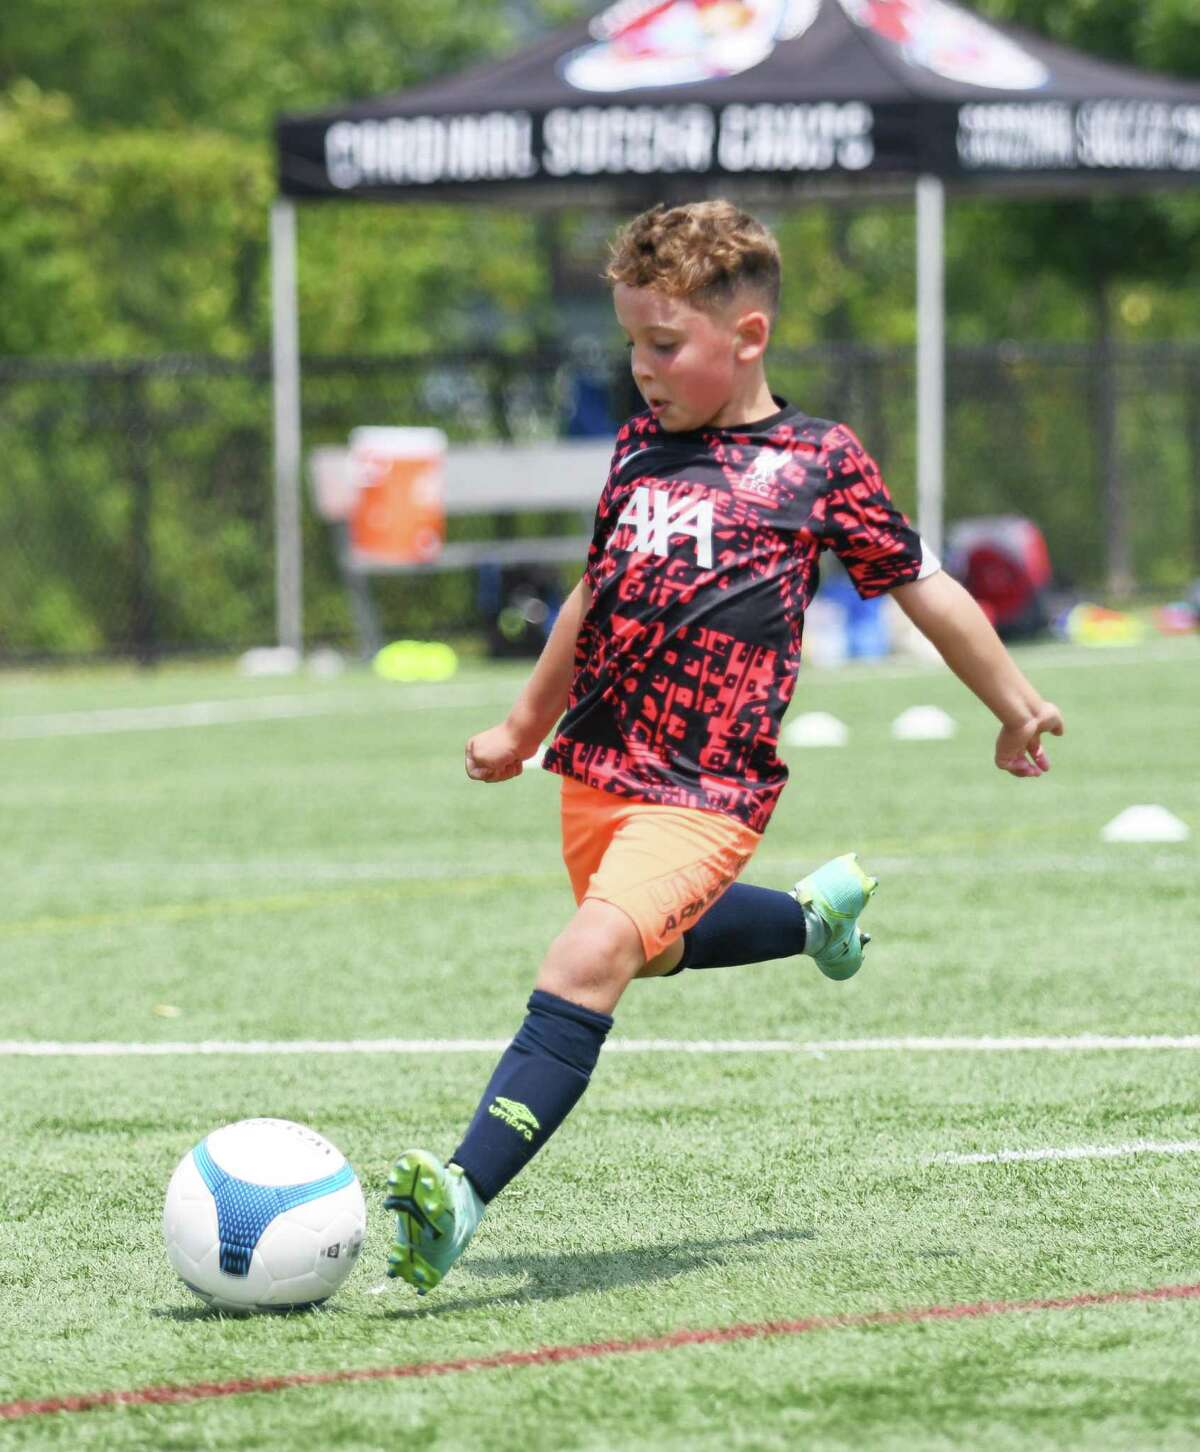 Keden Smith, 8, shoots the ball during a drill at the Cardinal Soccer Camps at Cos Cob Park in the Cos Cob section of Greenwich, Conn. Monday, July 26, 2021. About 100 elementary through high school aged boys and girls take part in the camp, which in broken up into weeklong sessions from late June through late August. Several local soccer coaches teach a variety of skills for all skill levels at the camps.